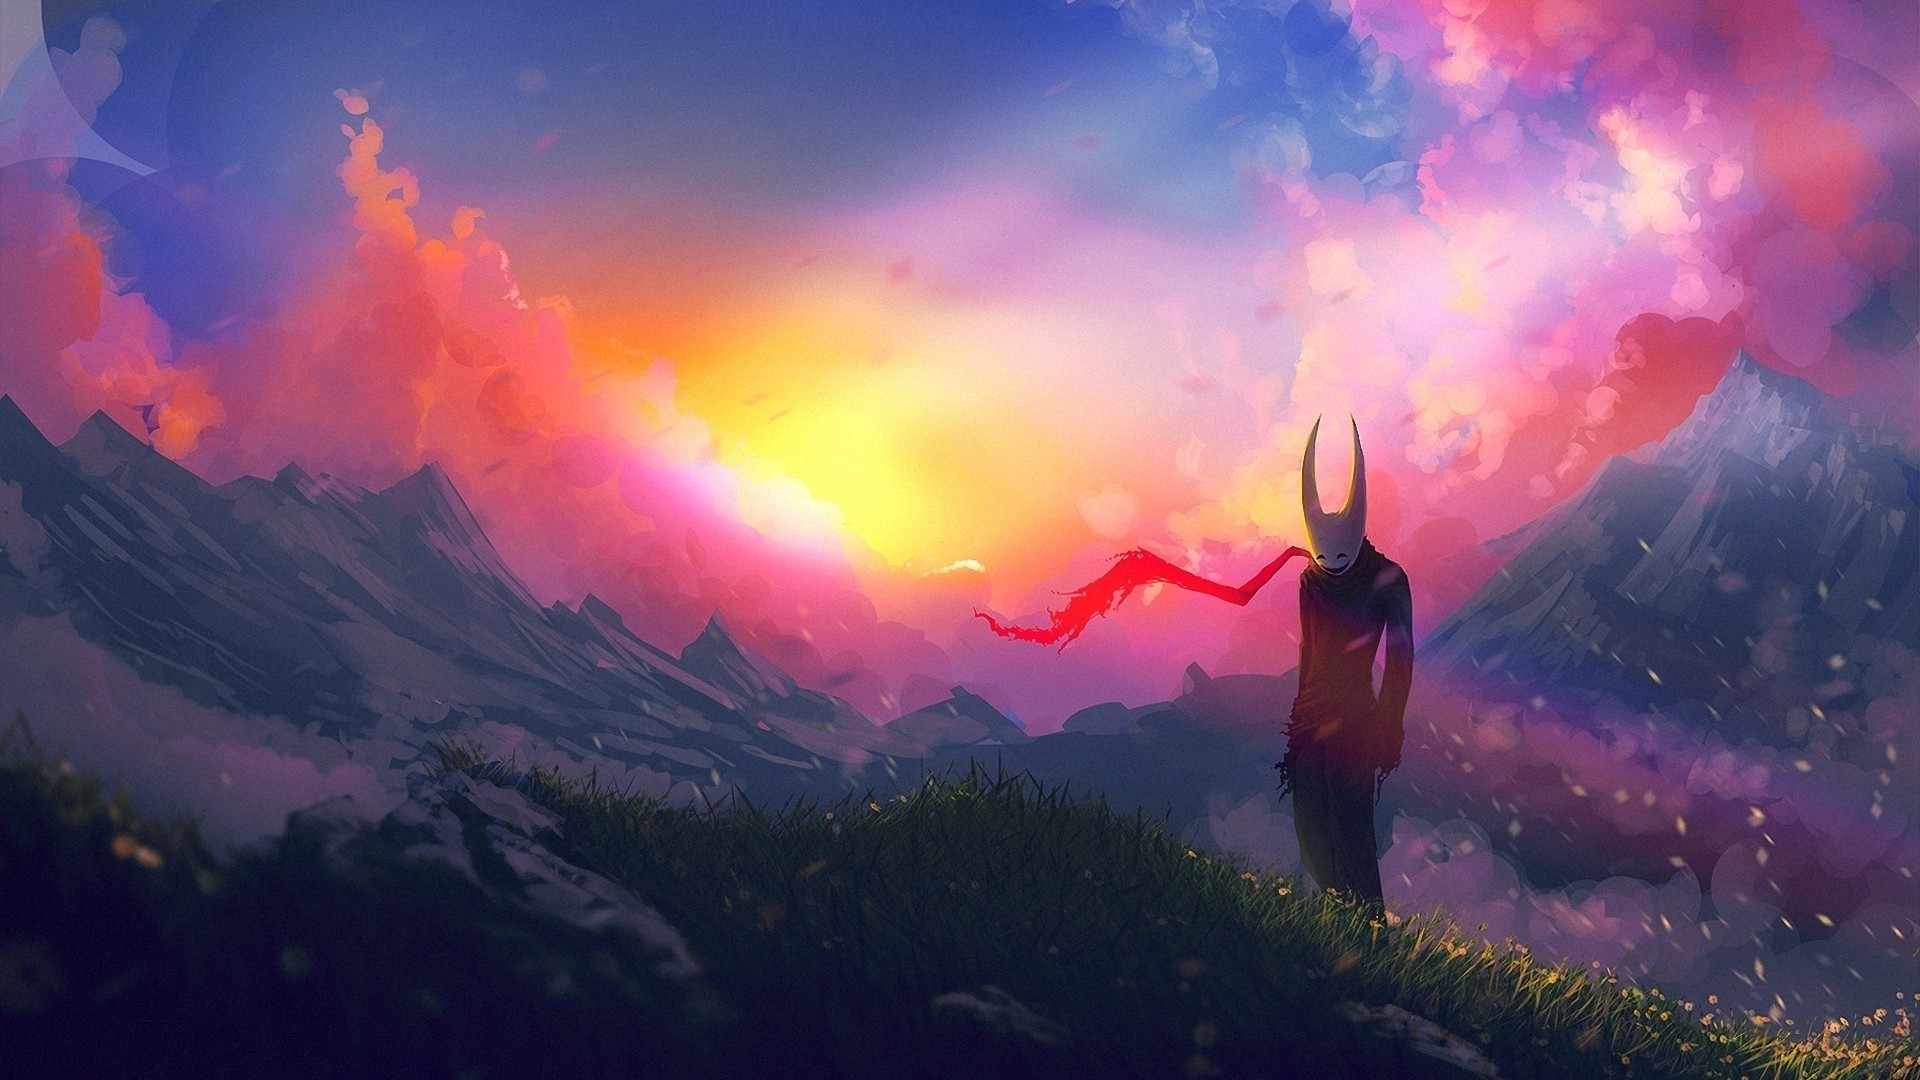 Res: 1920x1080, Anime In Nature